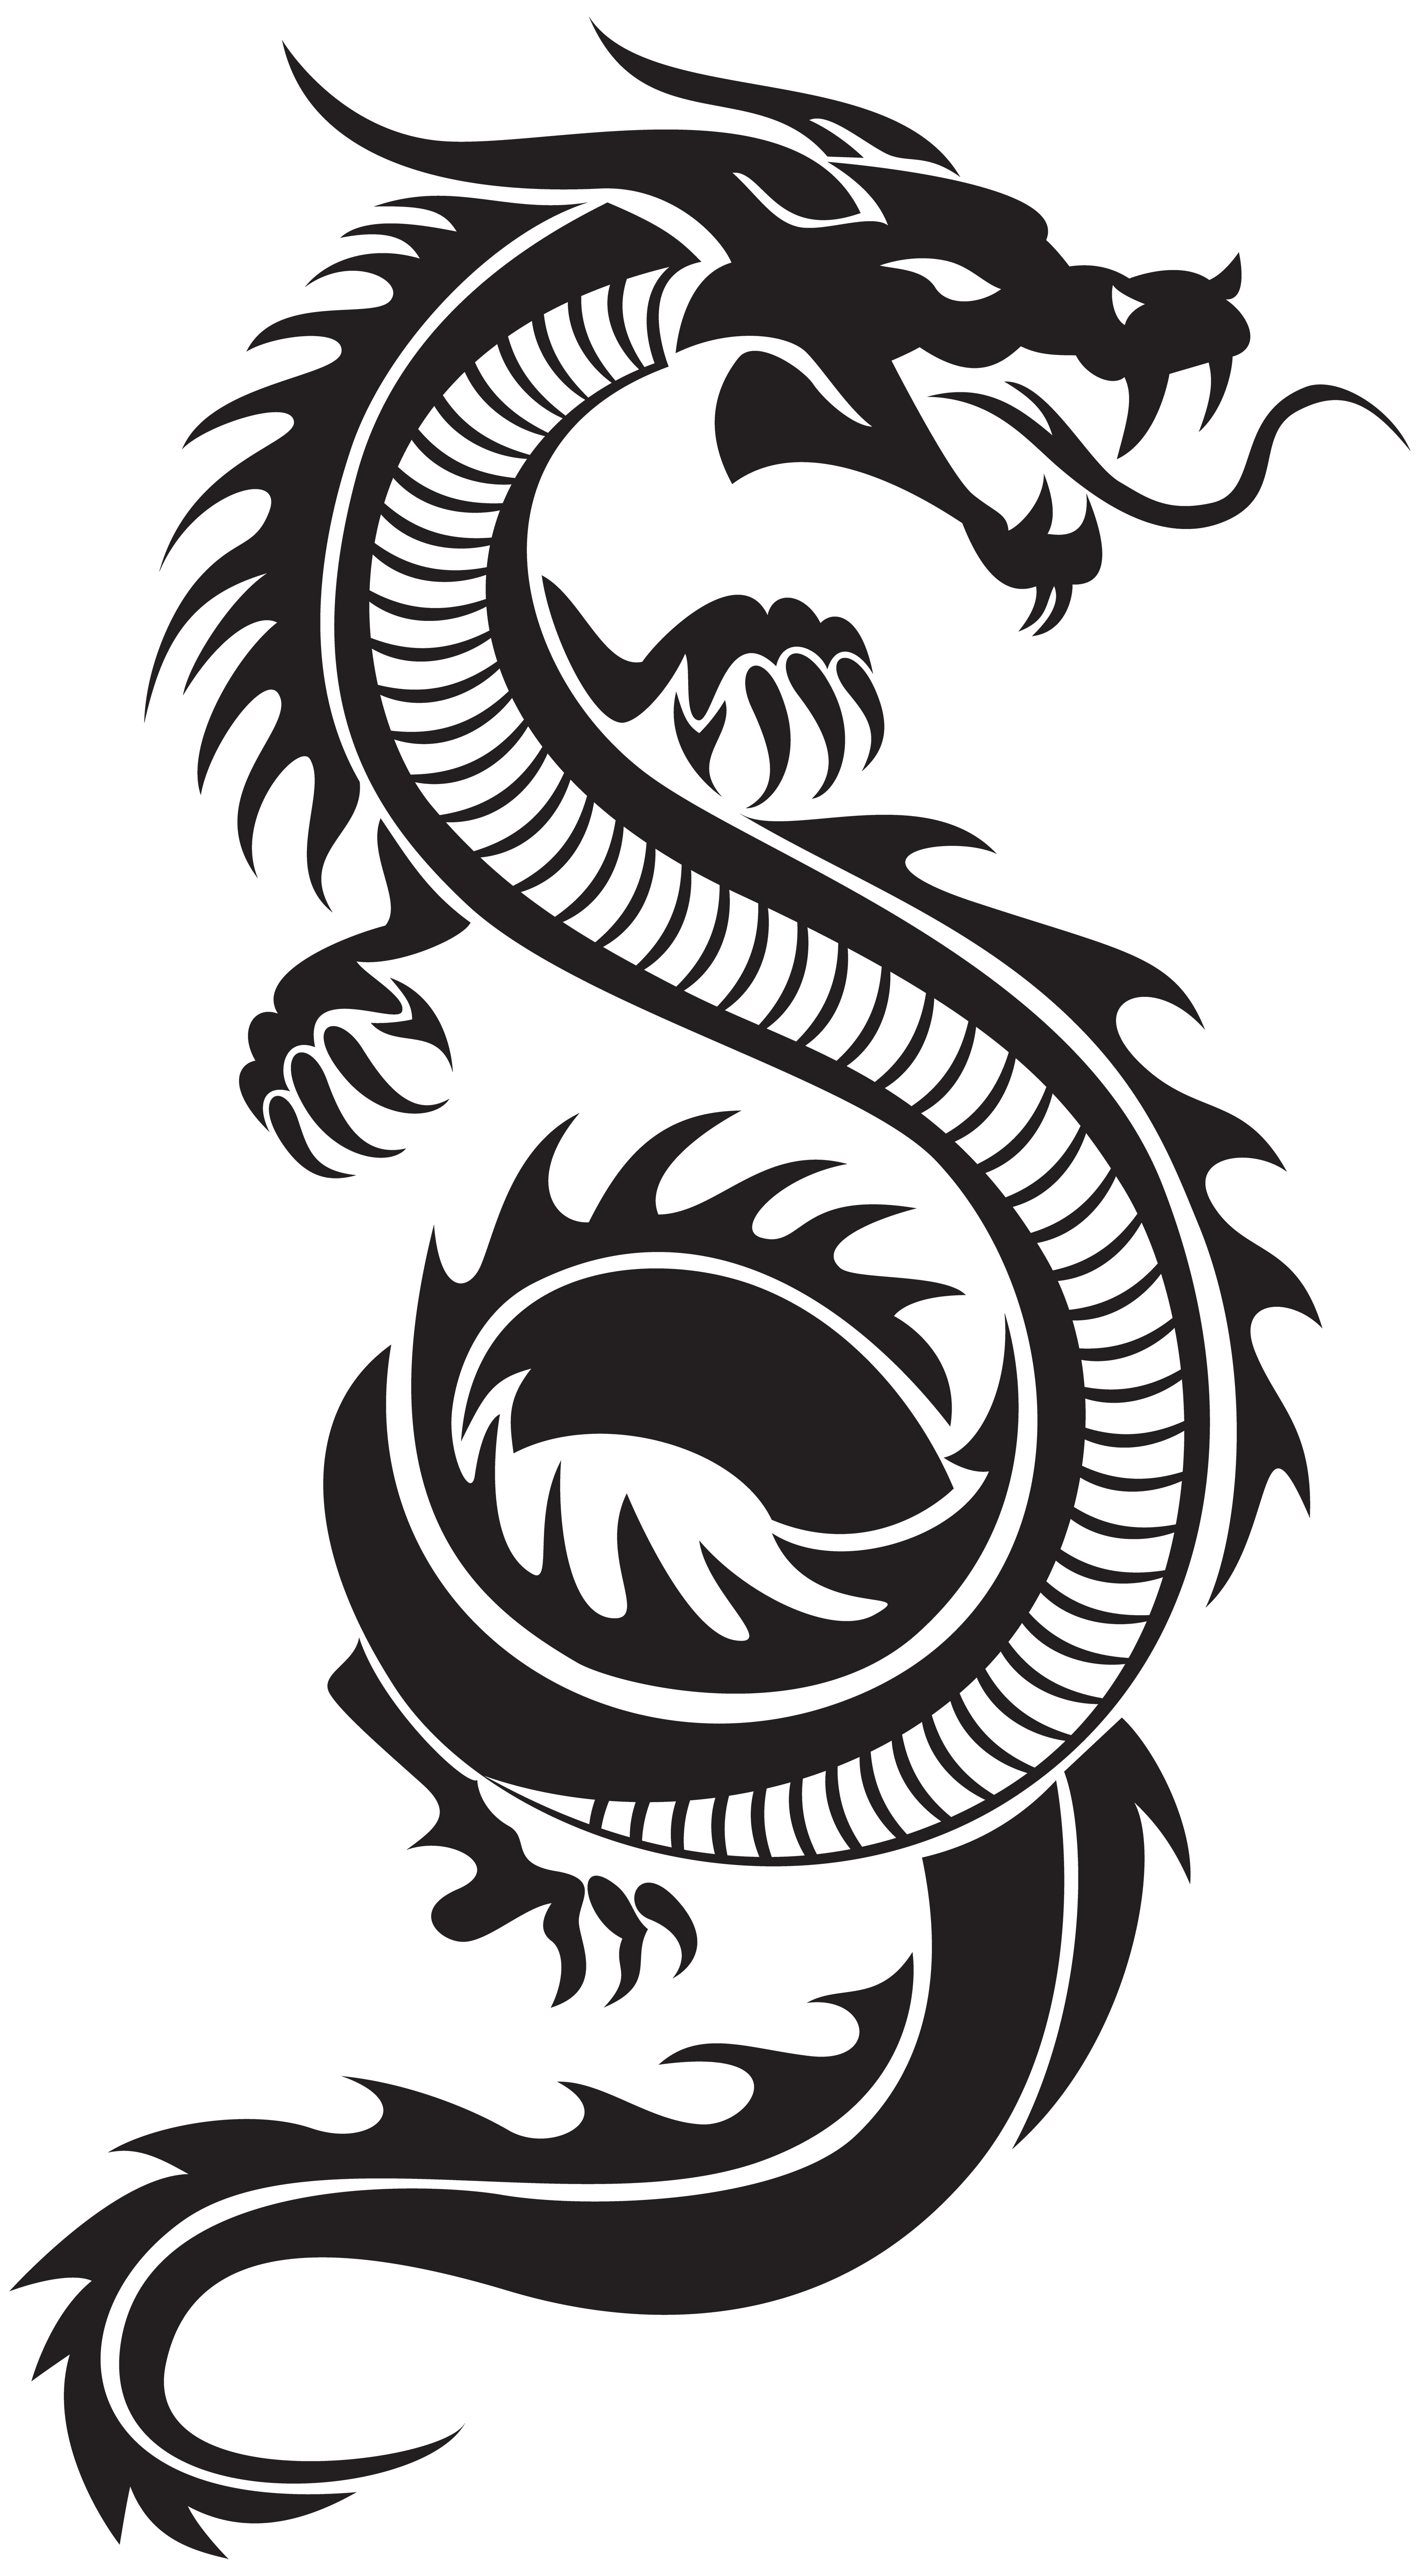 Clipart girl dragon. Chinese silhouette png clip